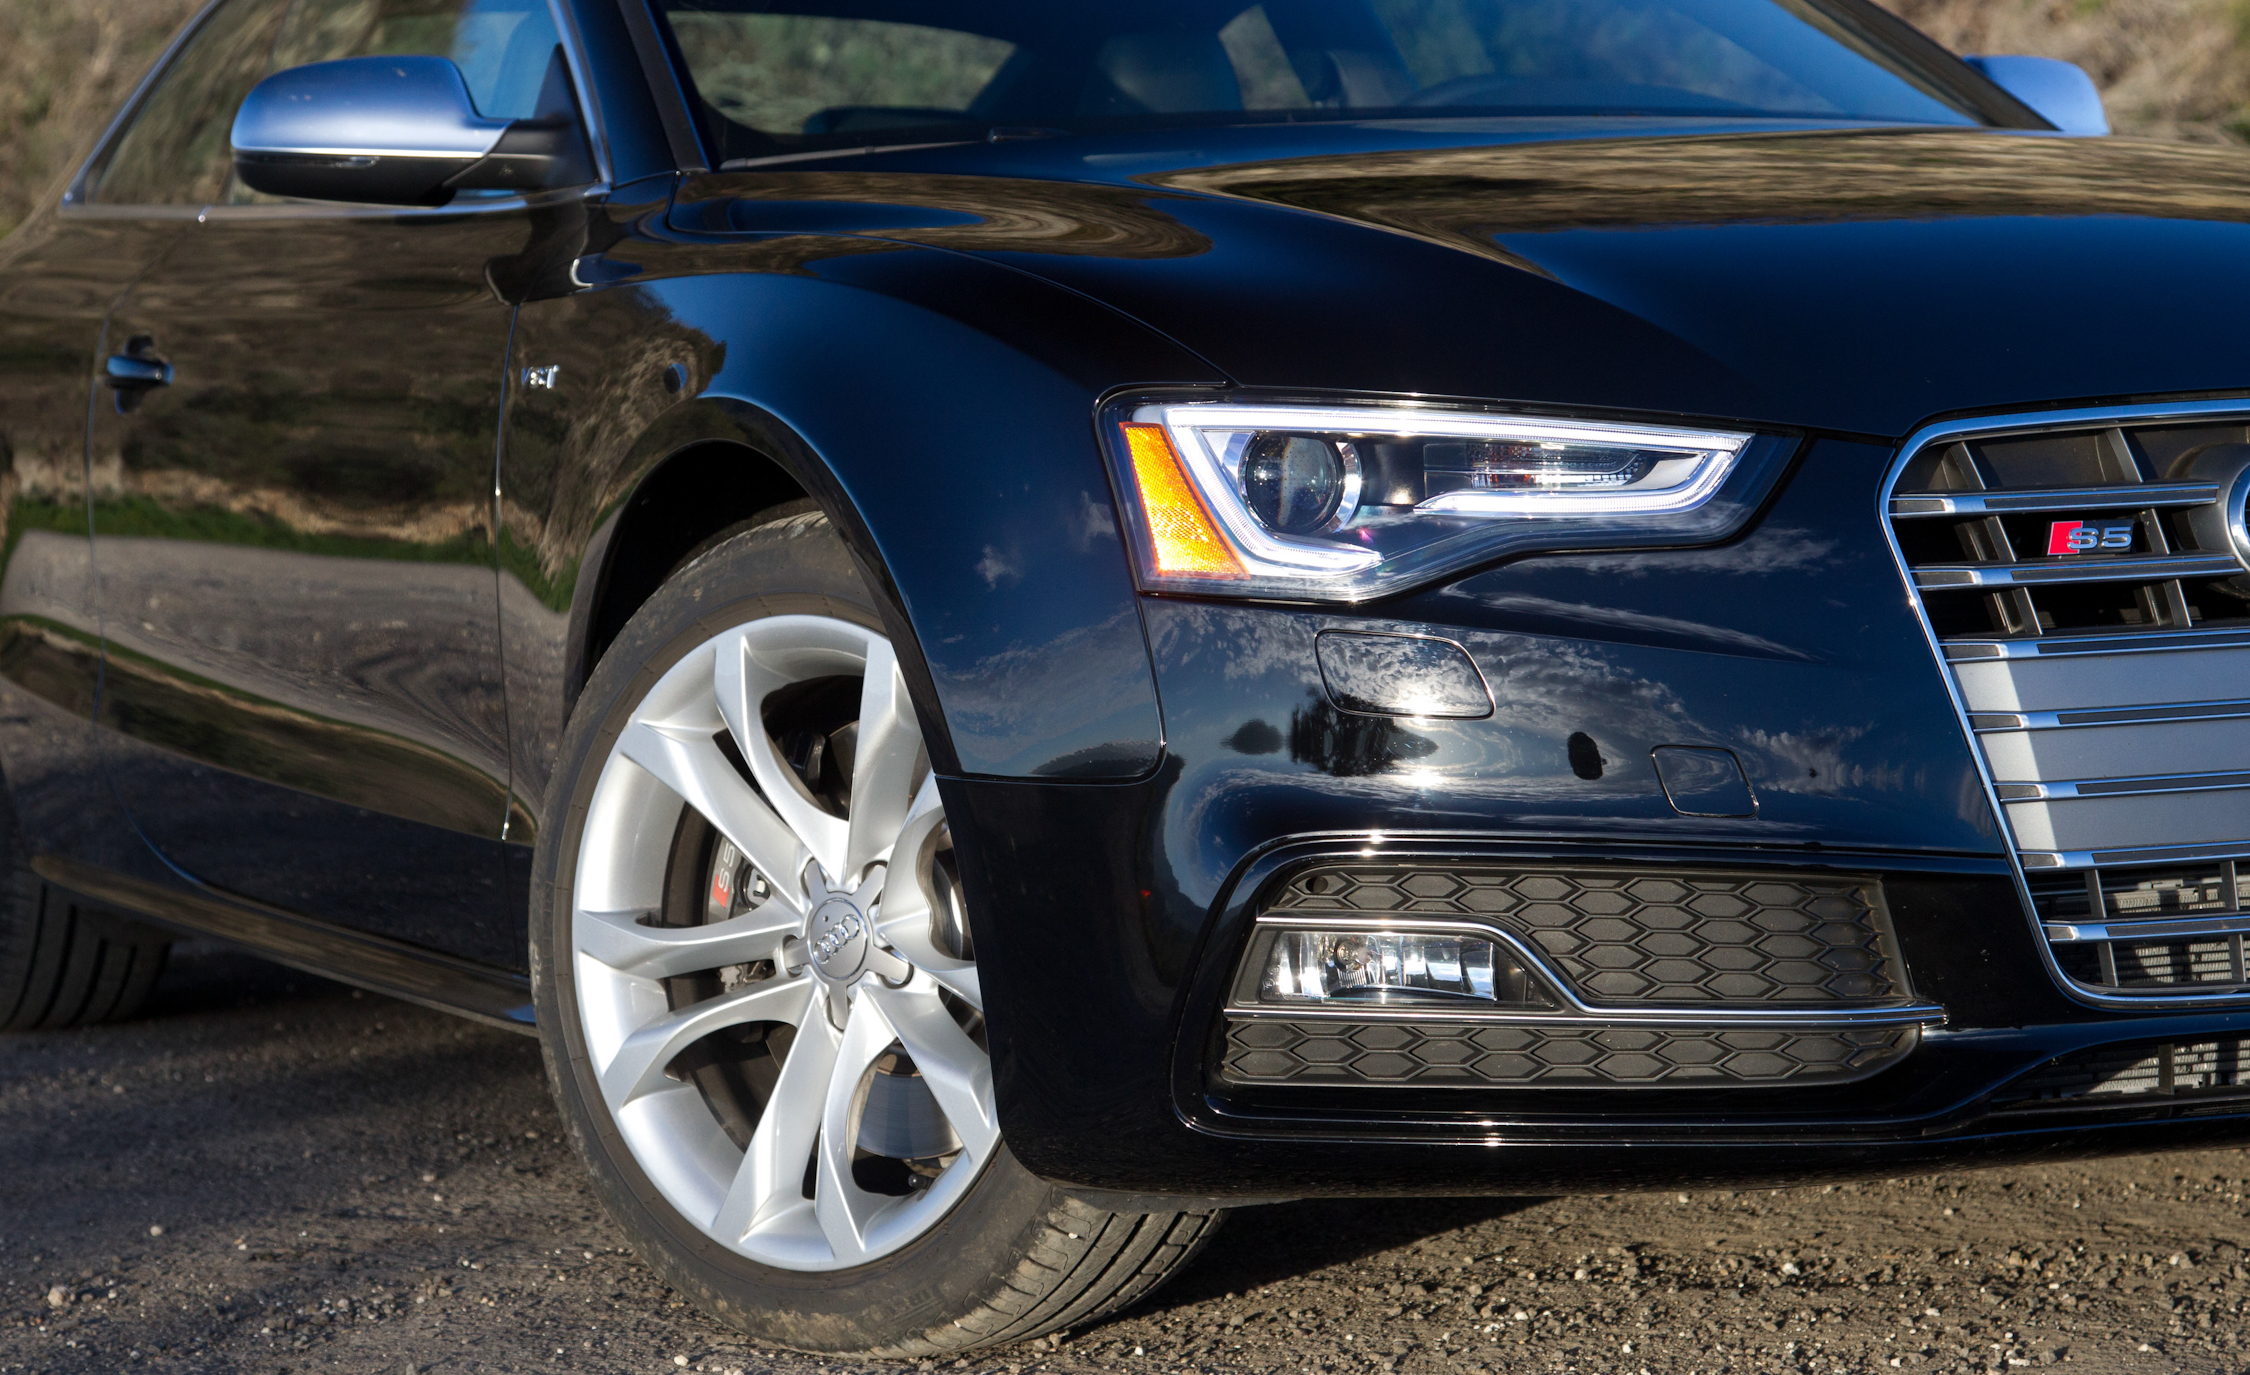 2015 Audi S5 Headlamp and Wheel